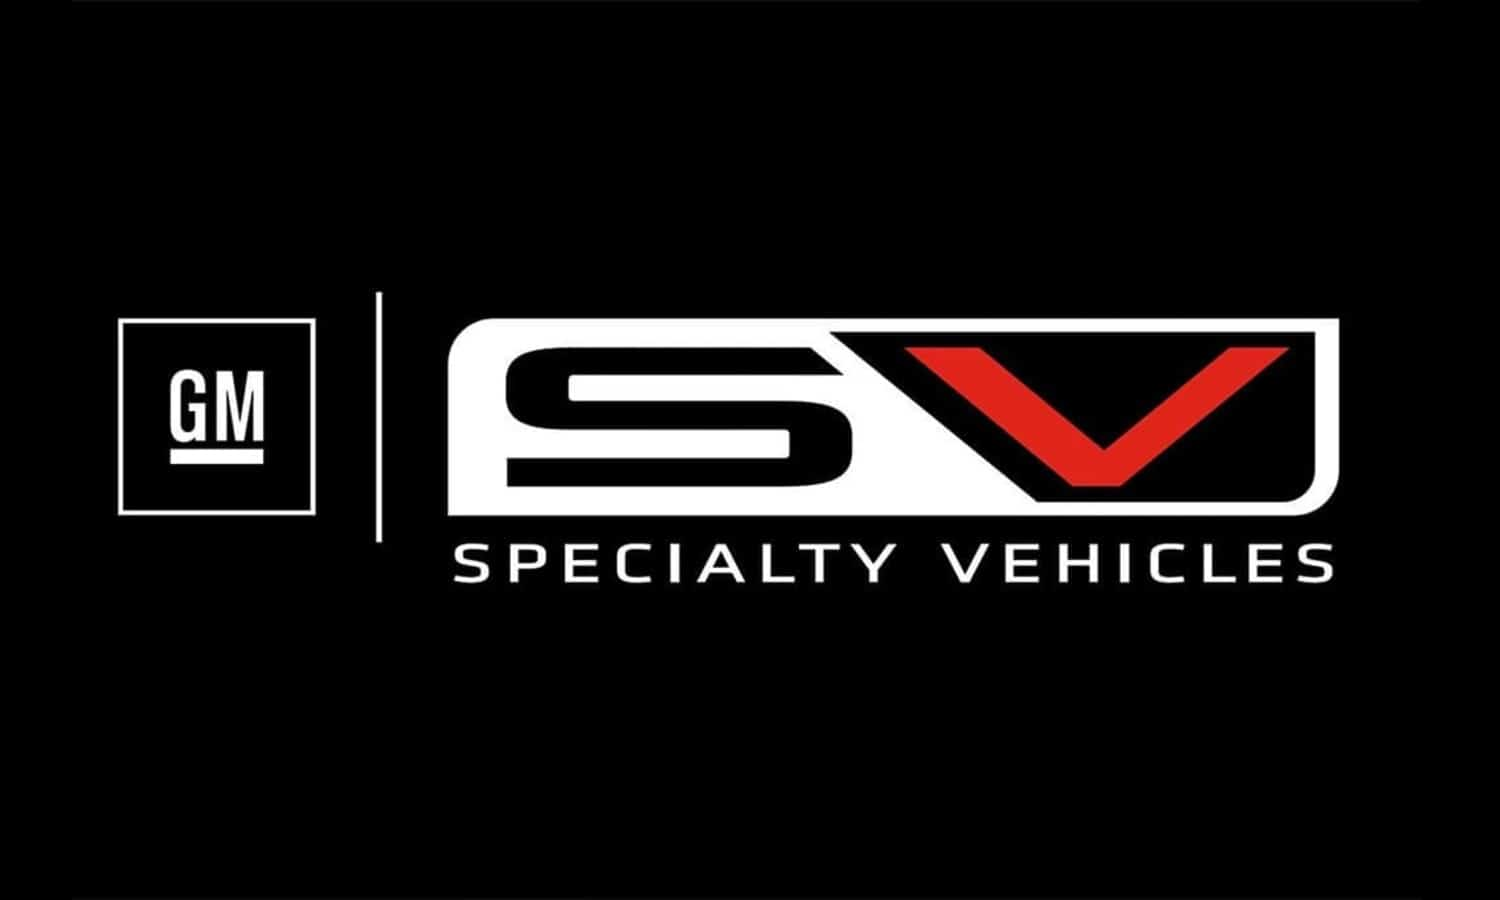 GM Special Vehicles (GMSV) - SV (Specialty Vehicles) - General Motors SV